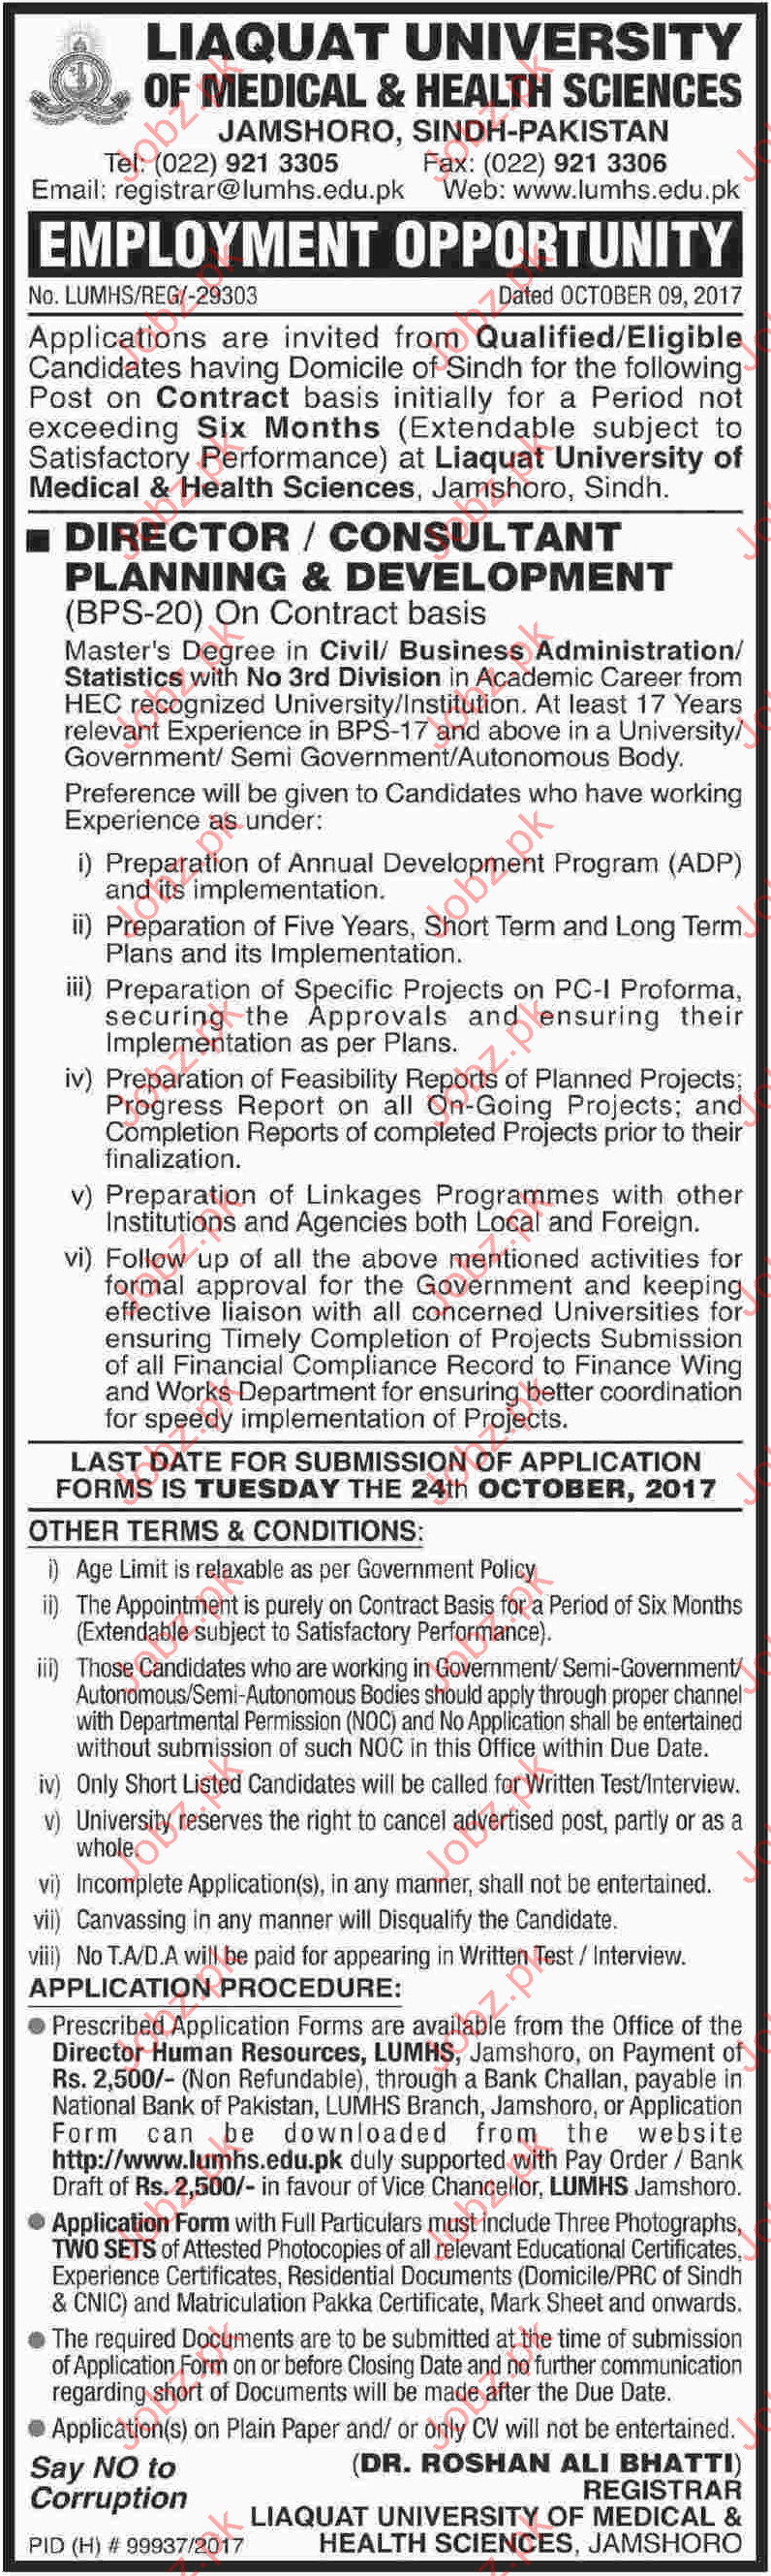 Liaquat University of Medical & Health Sciences required